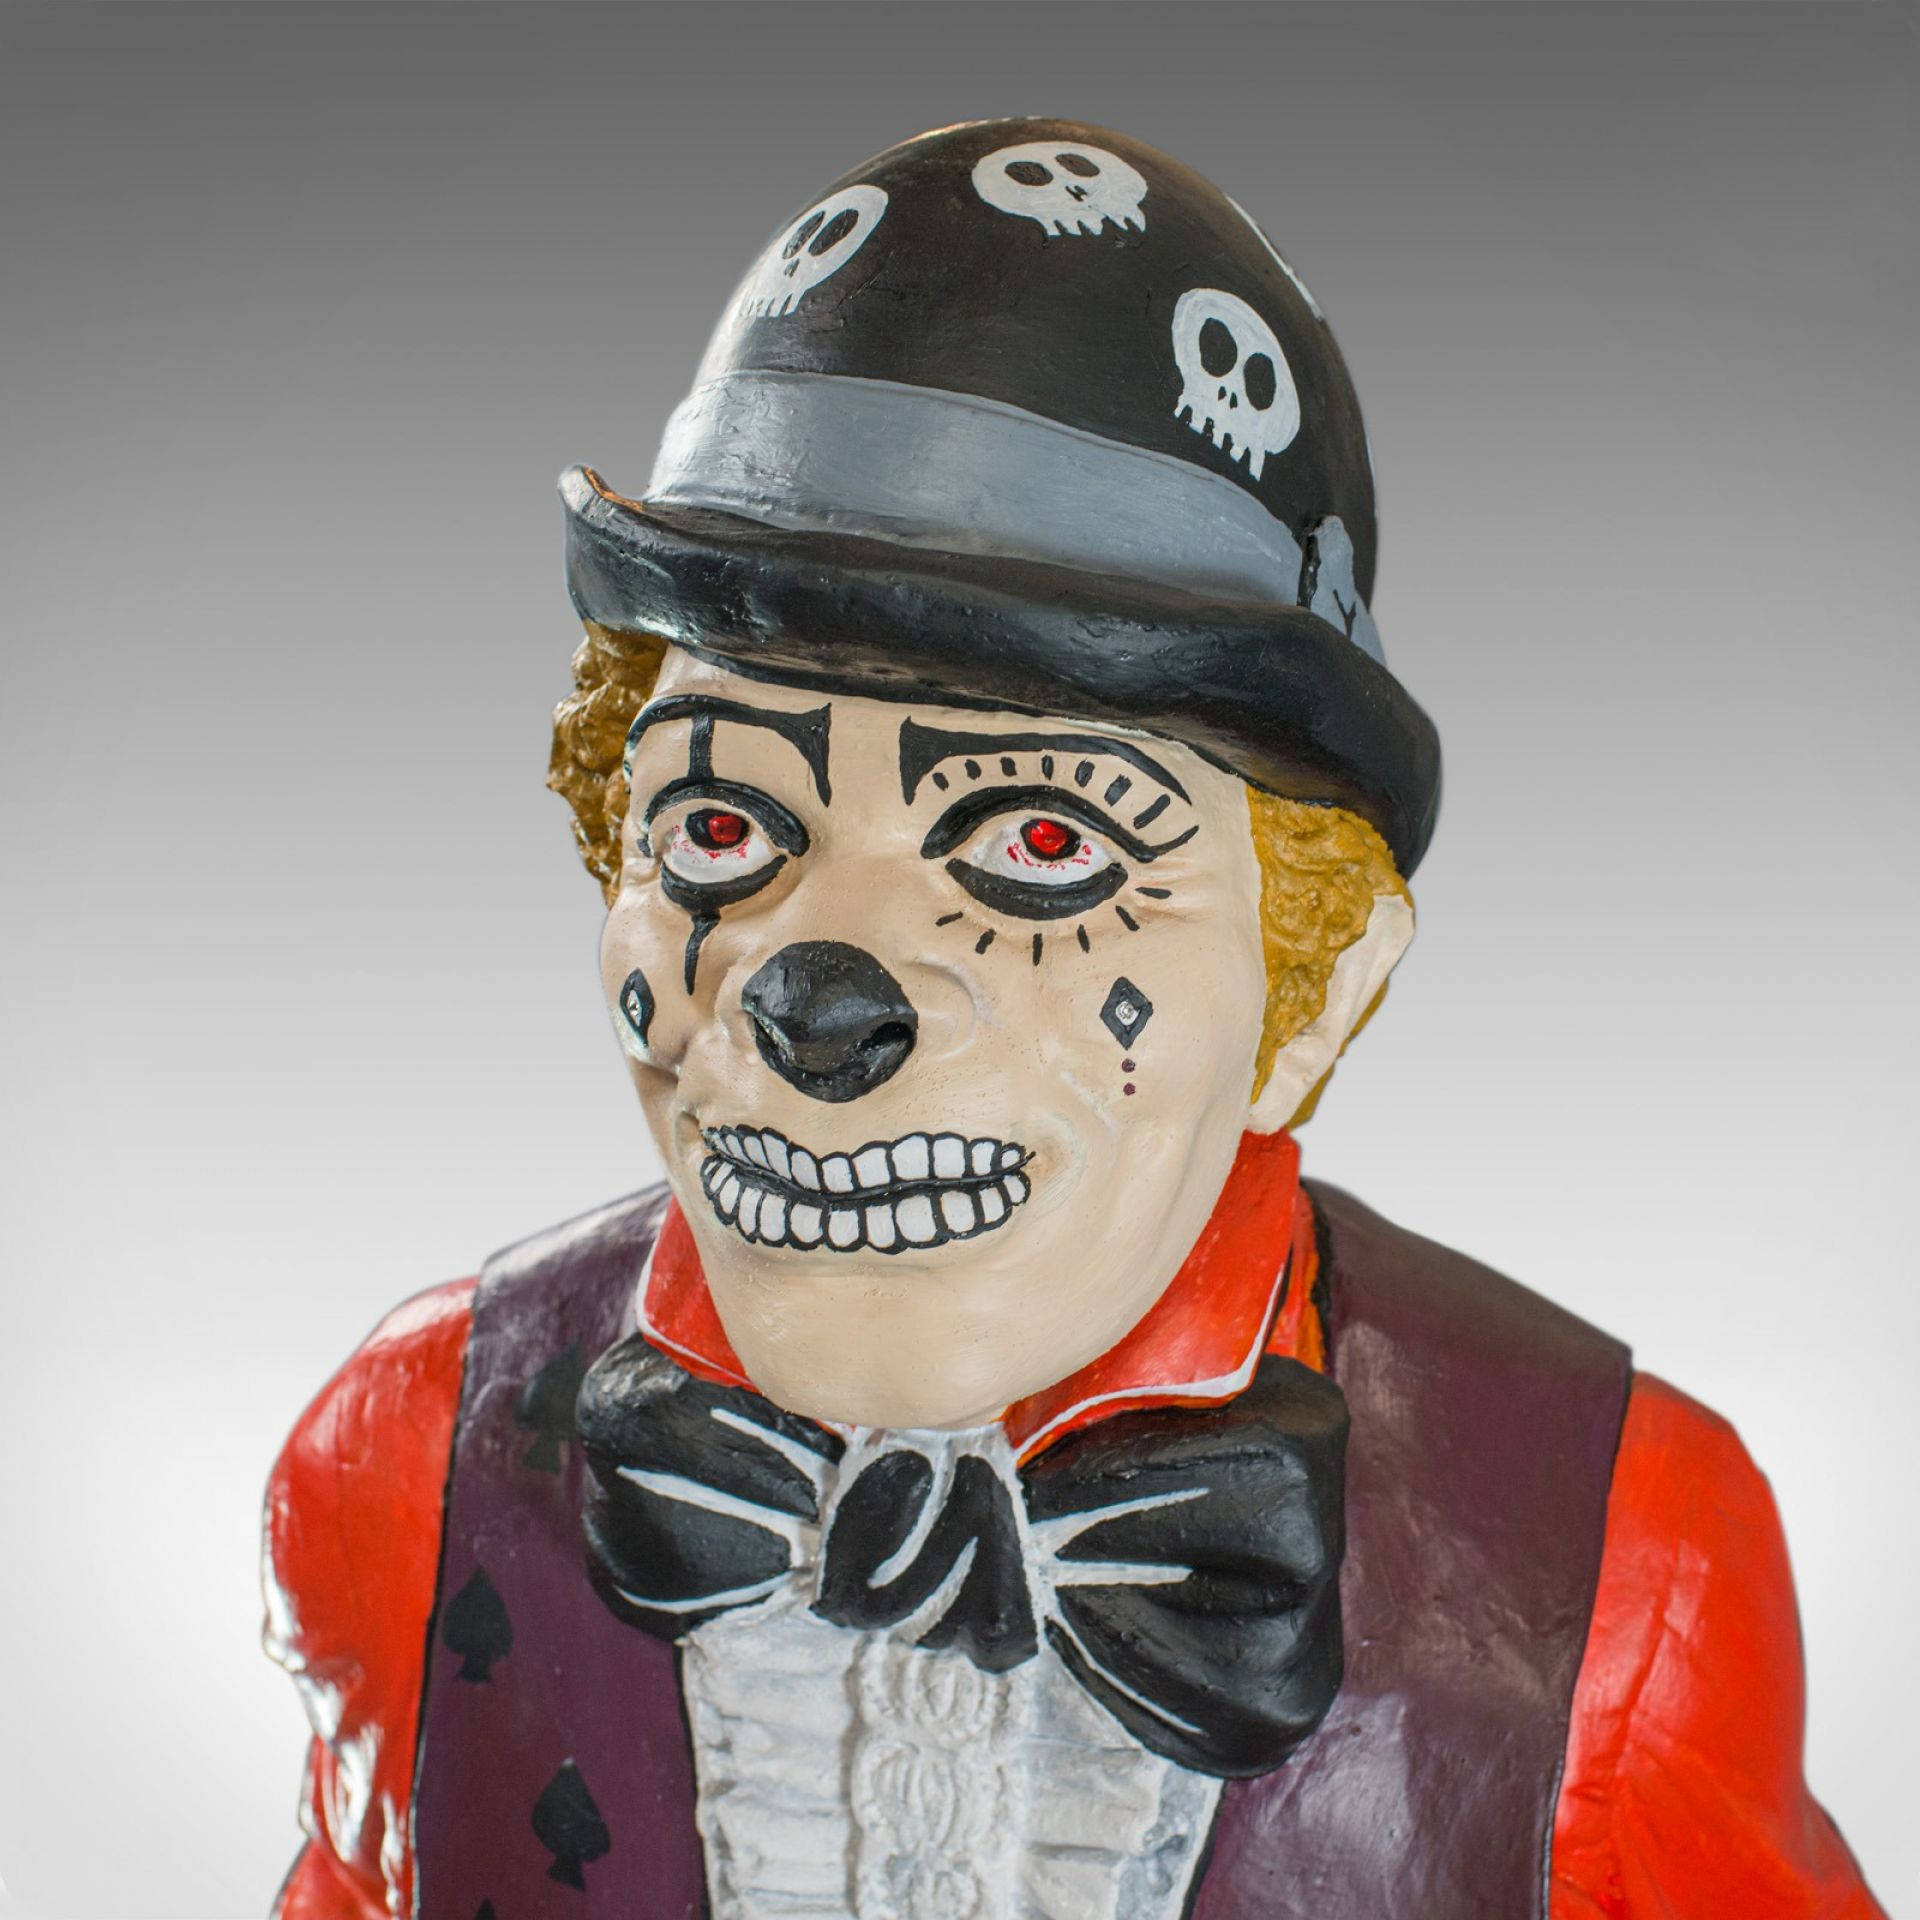 Life Size Vintage Clown Statue, English, Plaster, Day of the Dead, mid C20th